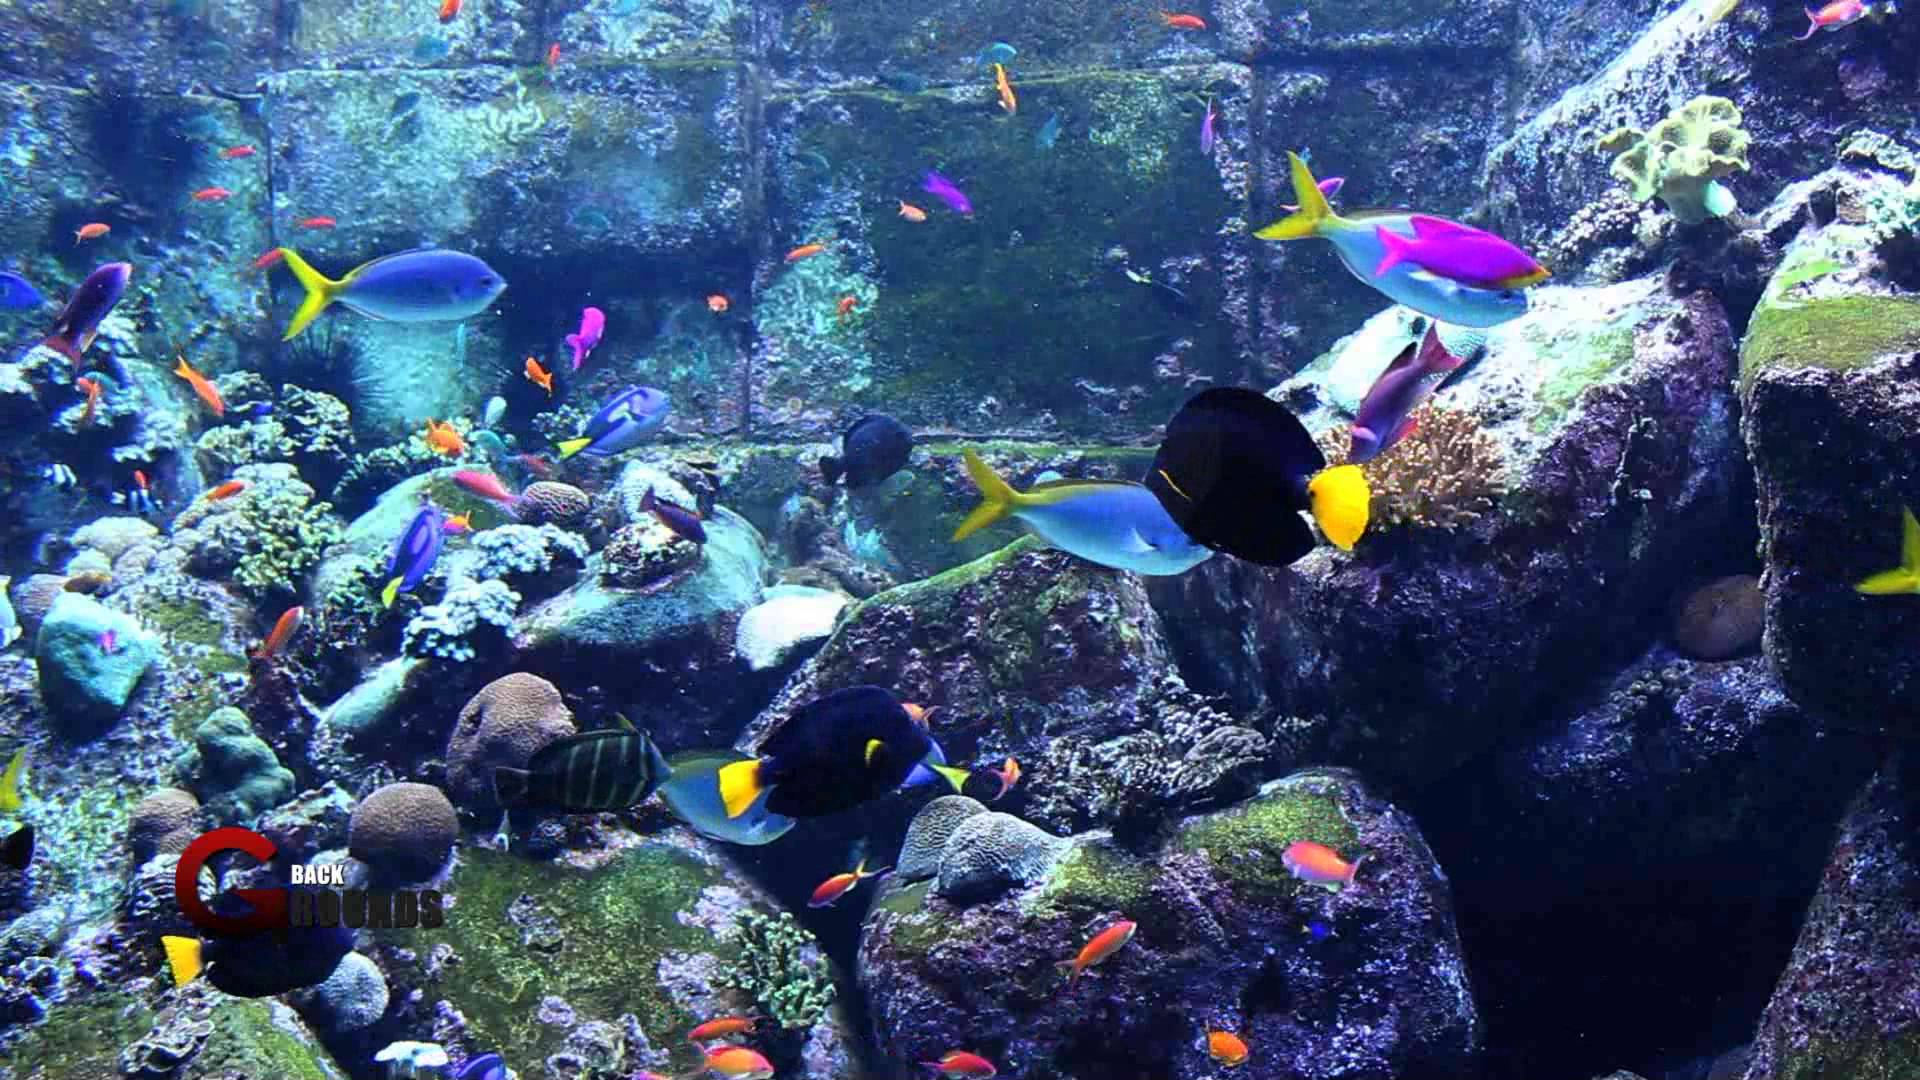 Aquarium screensaver fish tank 1080p hd - Aquarium Royalty Free Stock Footage Hd 1080p Youtube